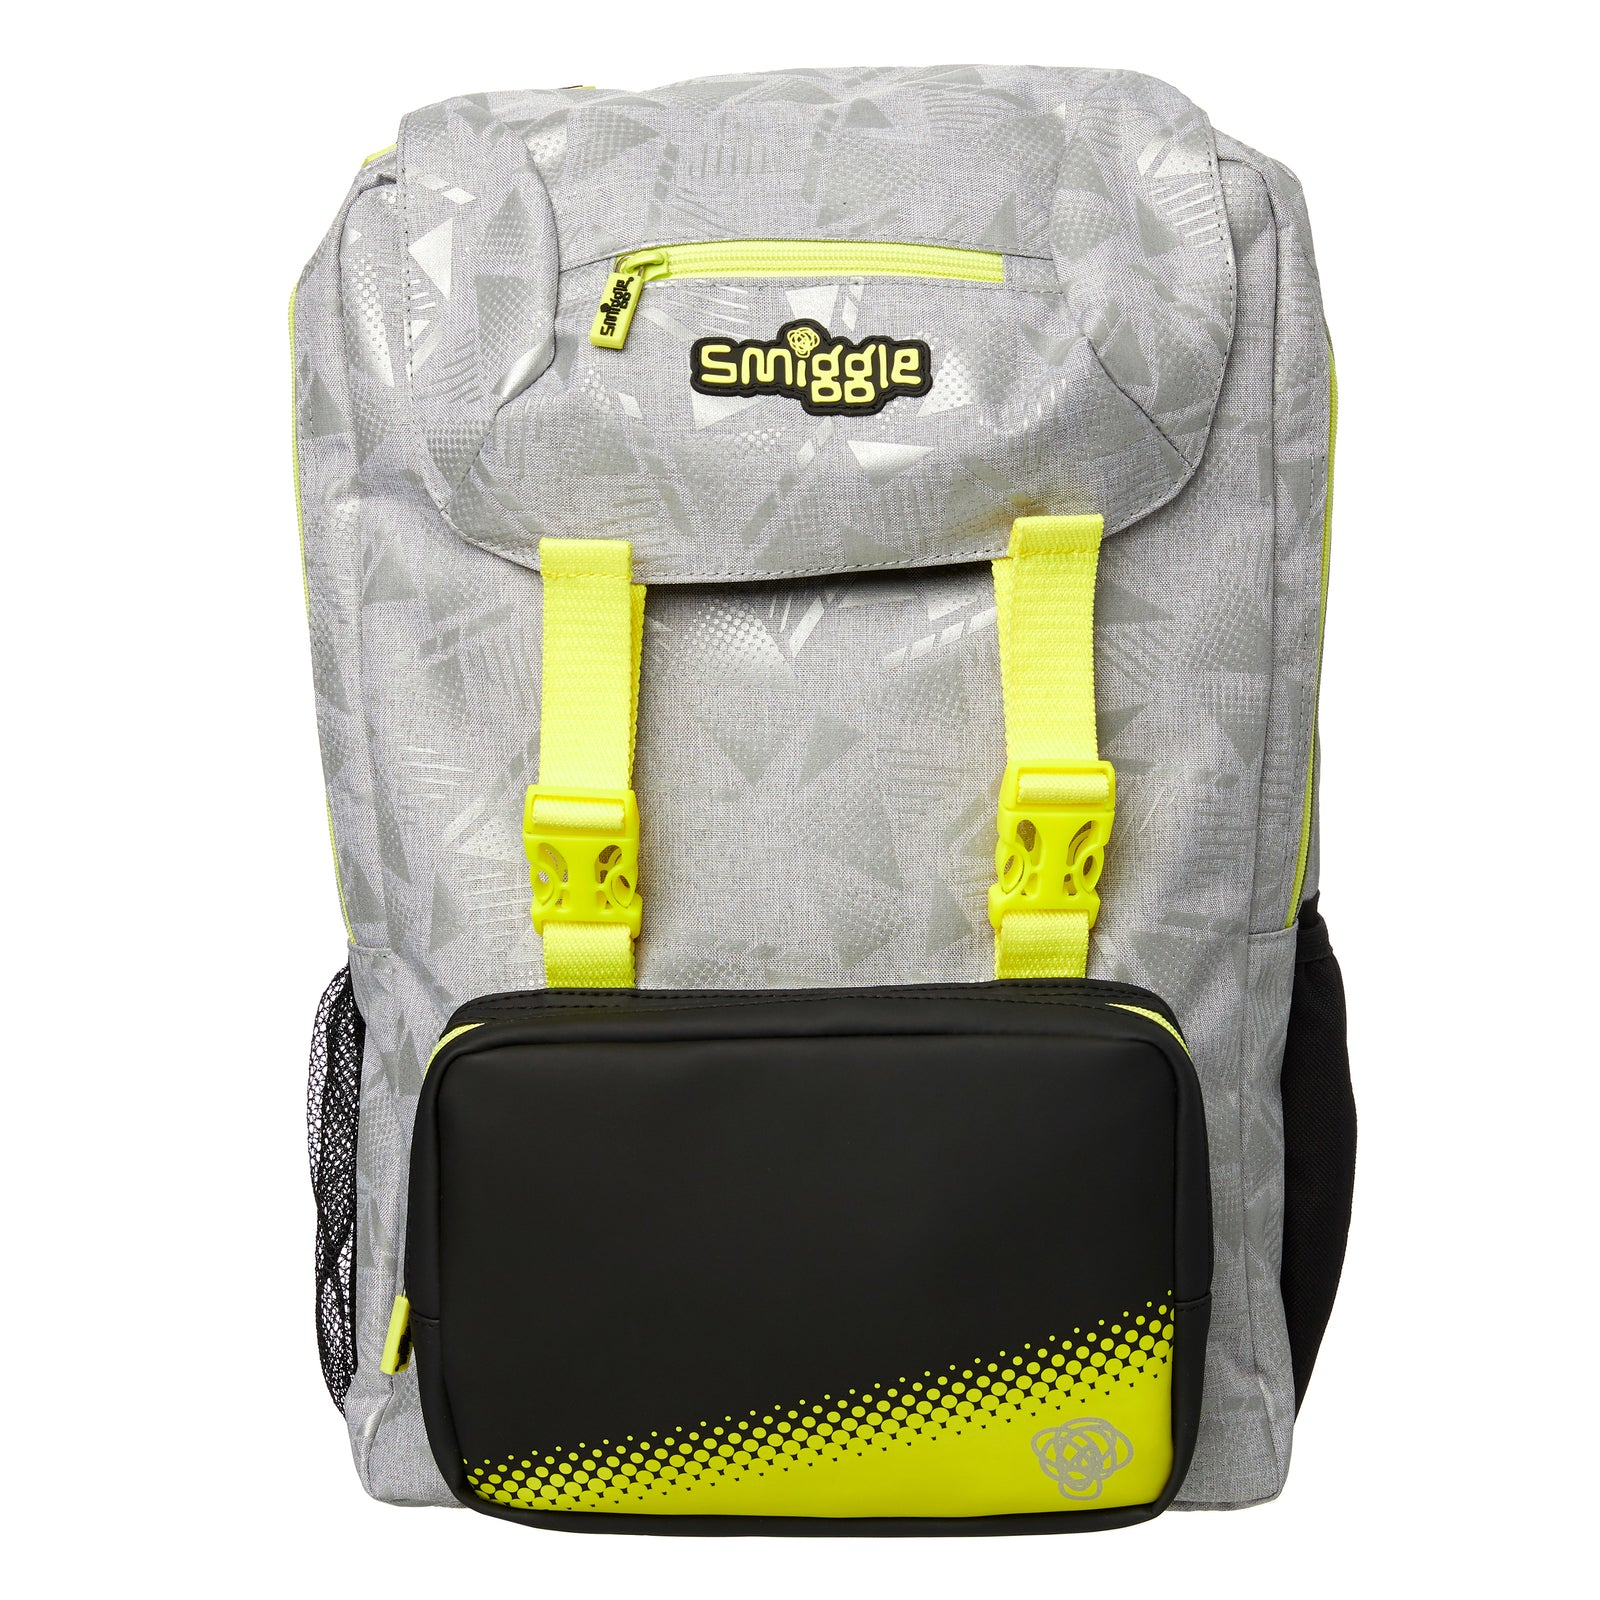 SMIGGLE - FRESH FOLDOVER BACKPACK GRAY